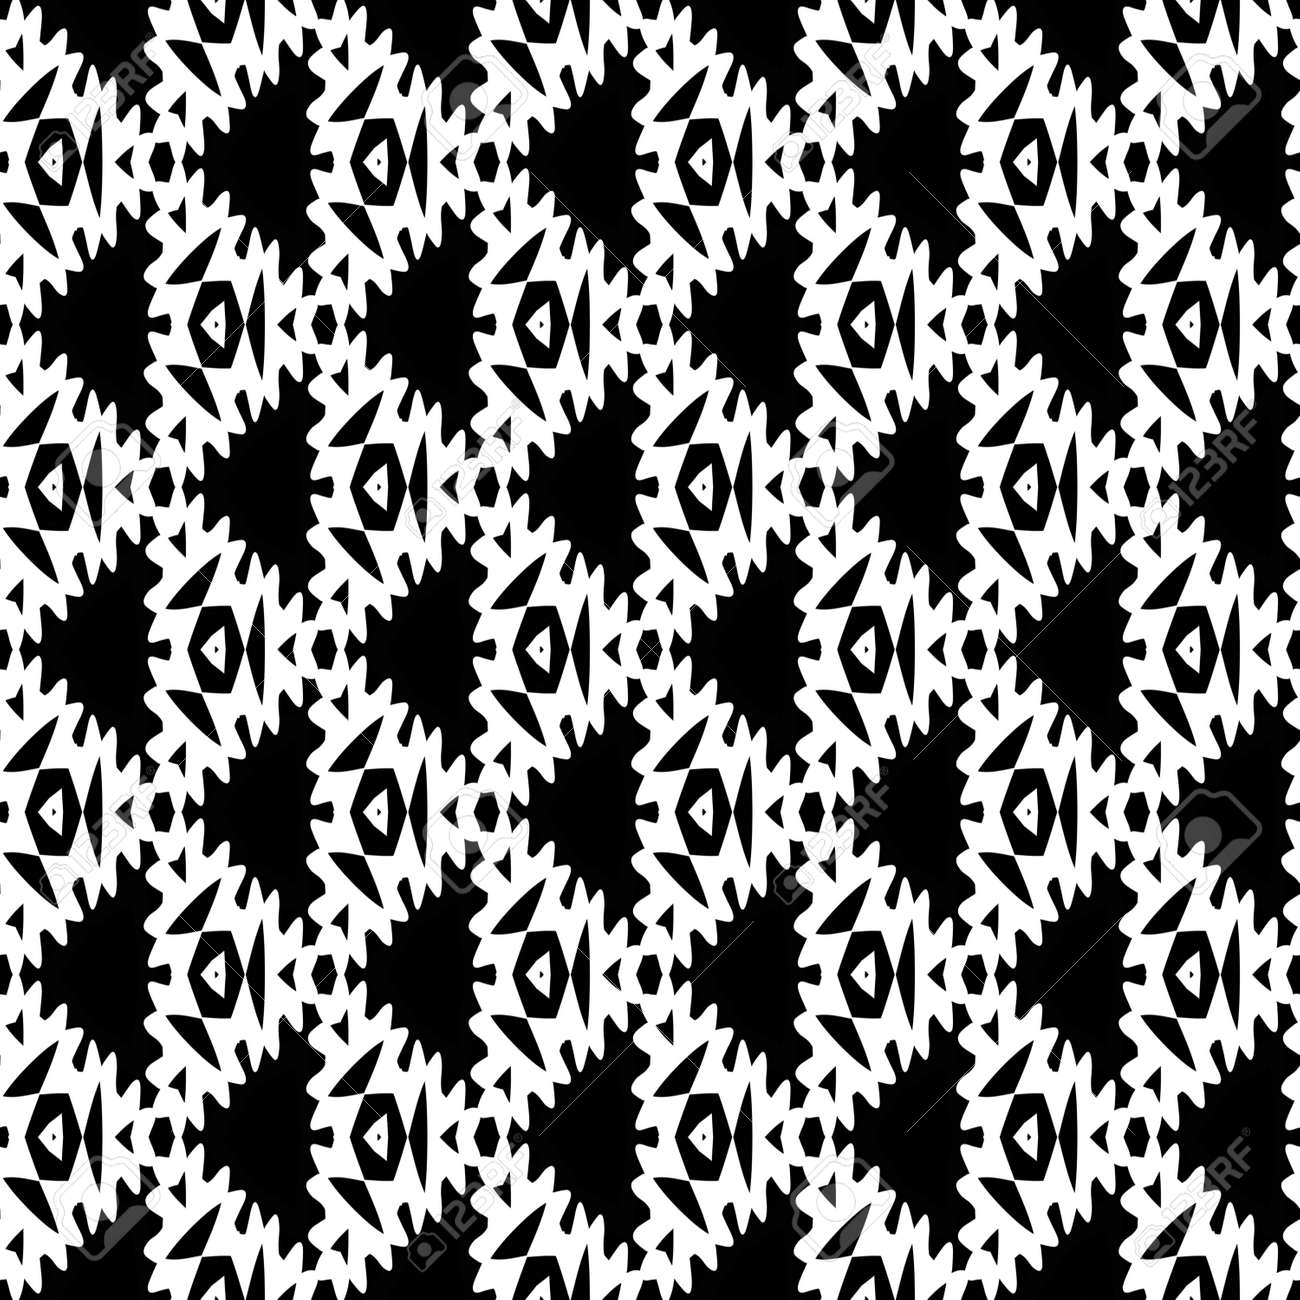 Coloriage Anti Stress Kaleidoscope.Adulte Page A Colorier Antistress Seamless Texture Mosaique